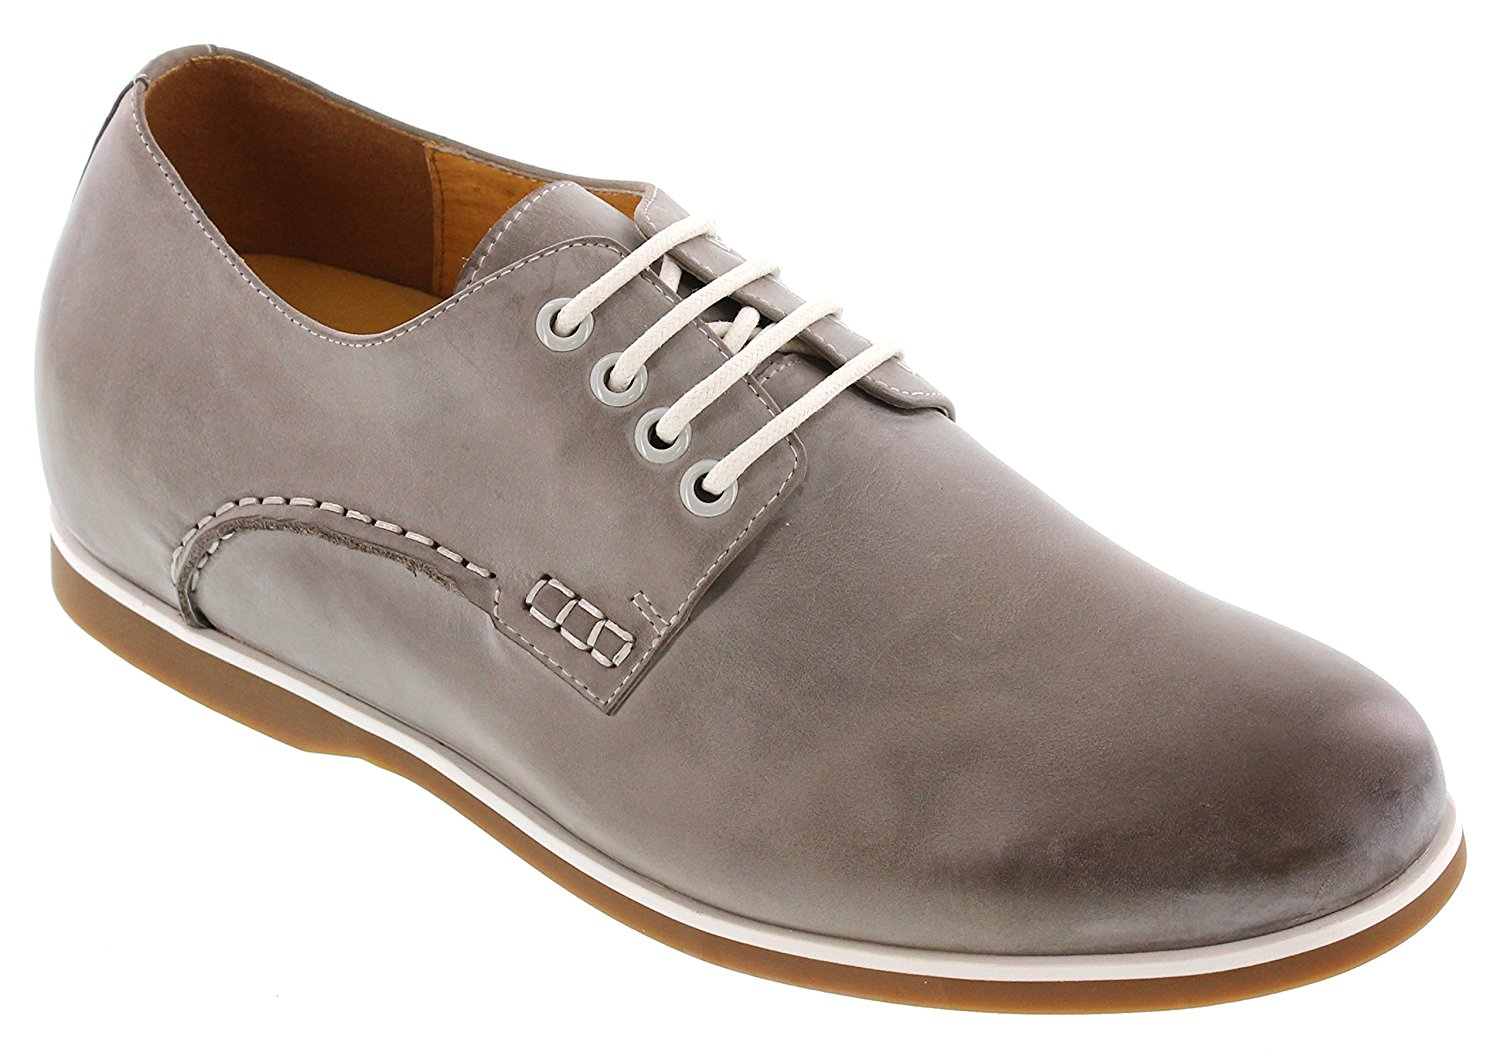 Toto D21906-2 inches Taller - Height Increasing Elevator Shoes - Marble Grey Lightweight Casual Shoes